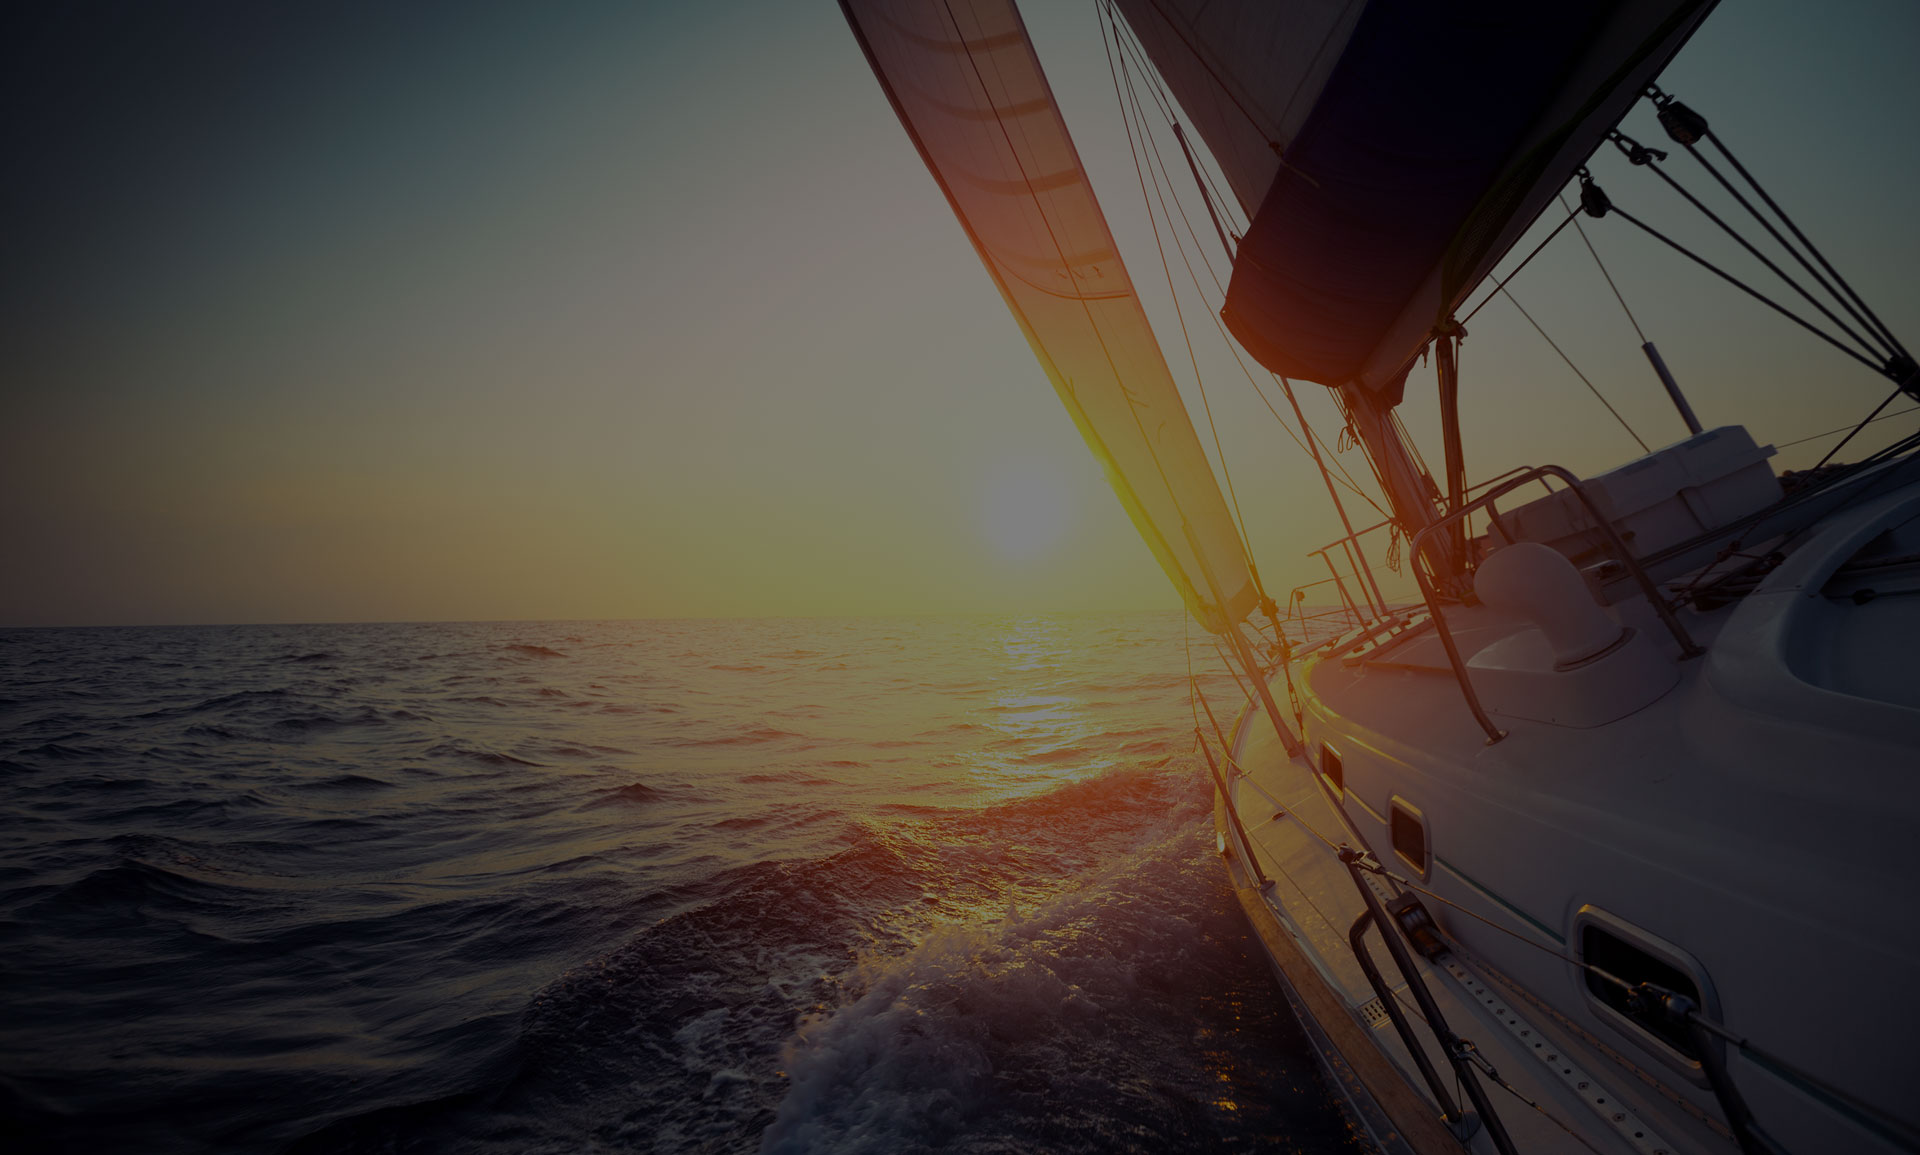 Sunset at the bow of a sailboat